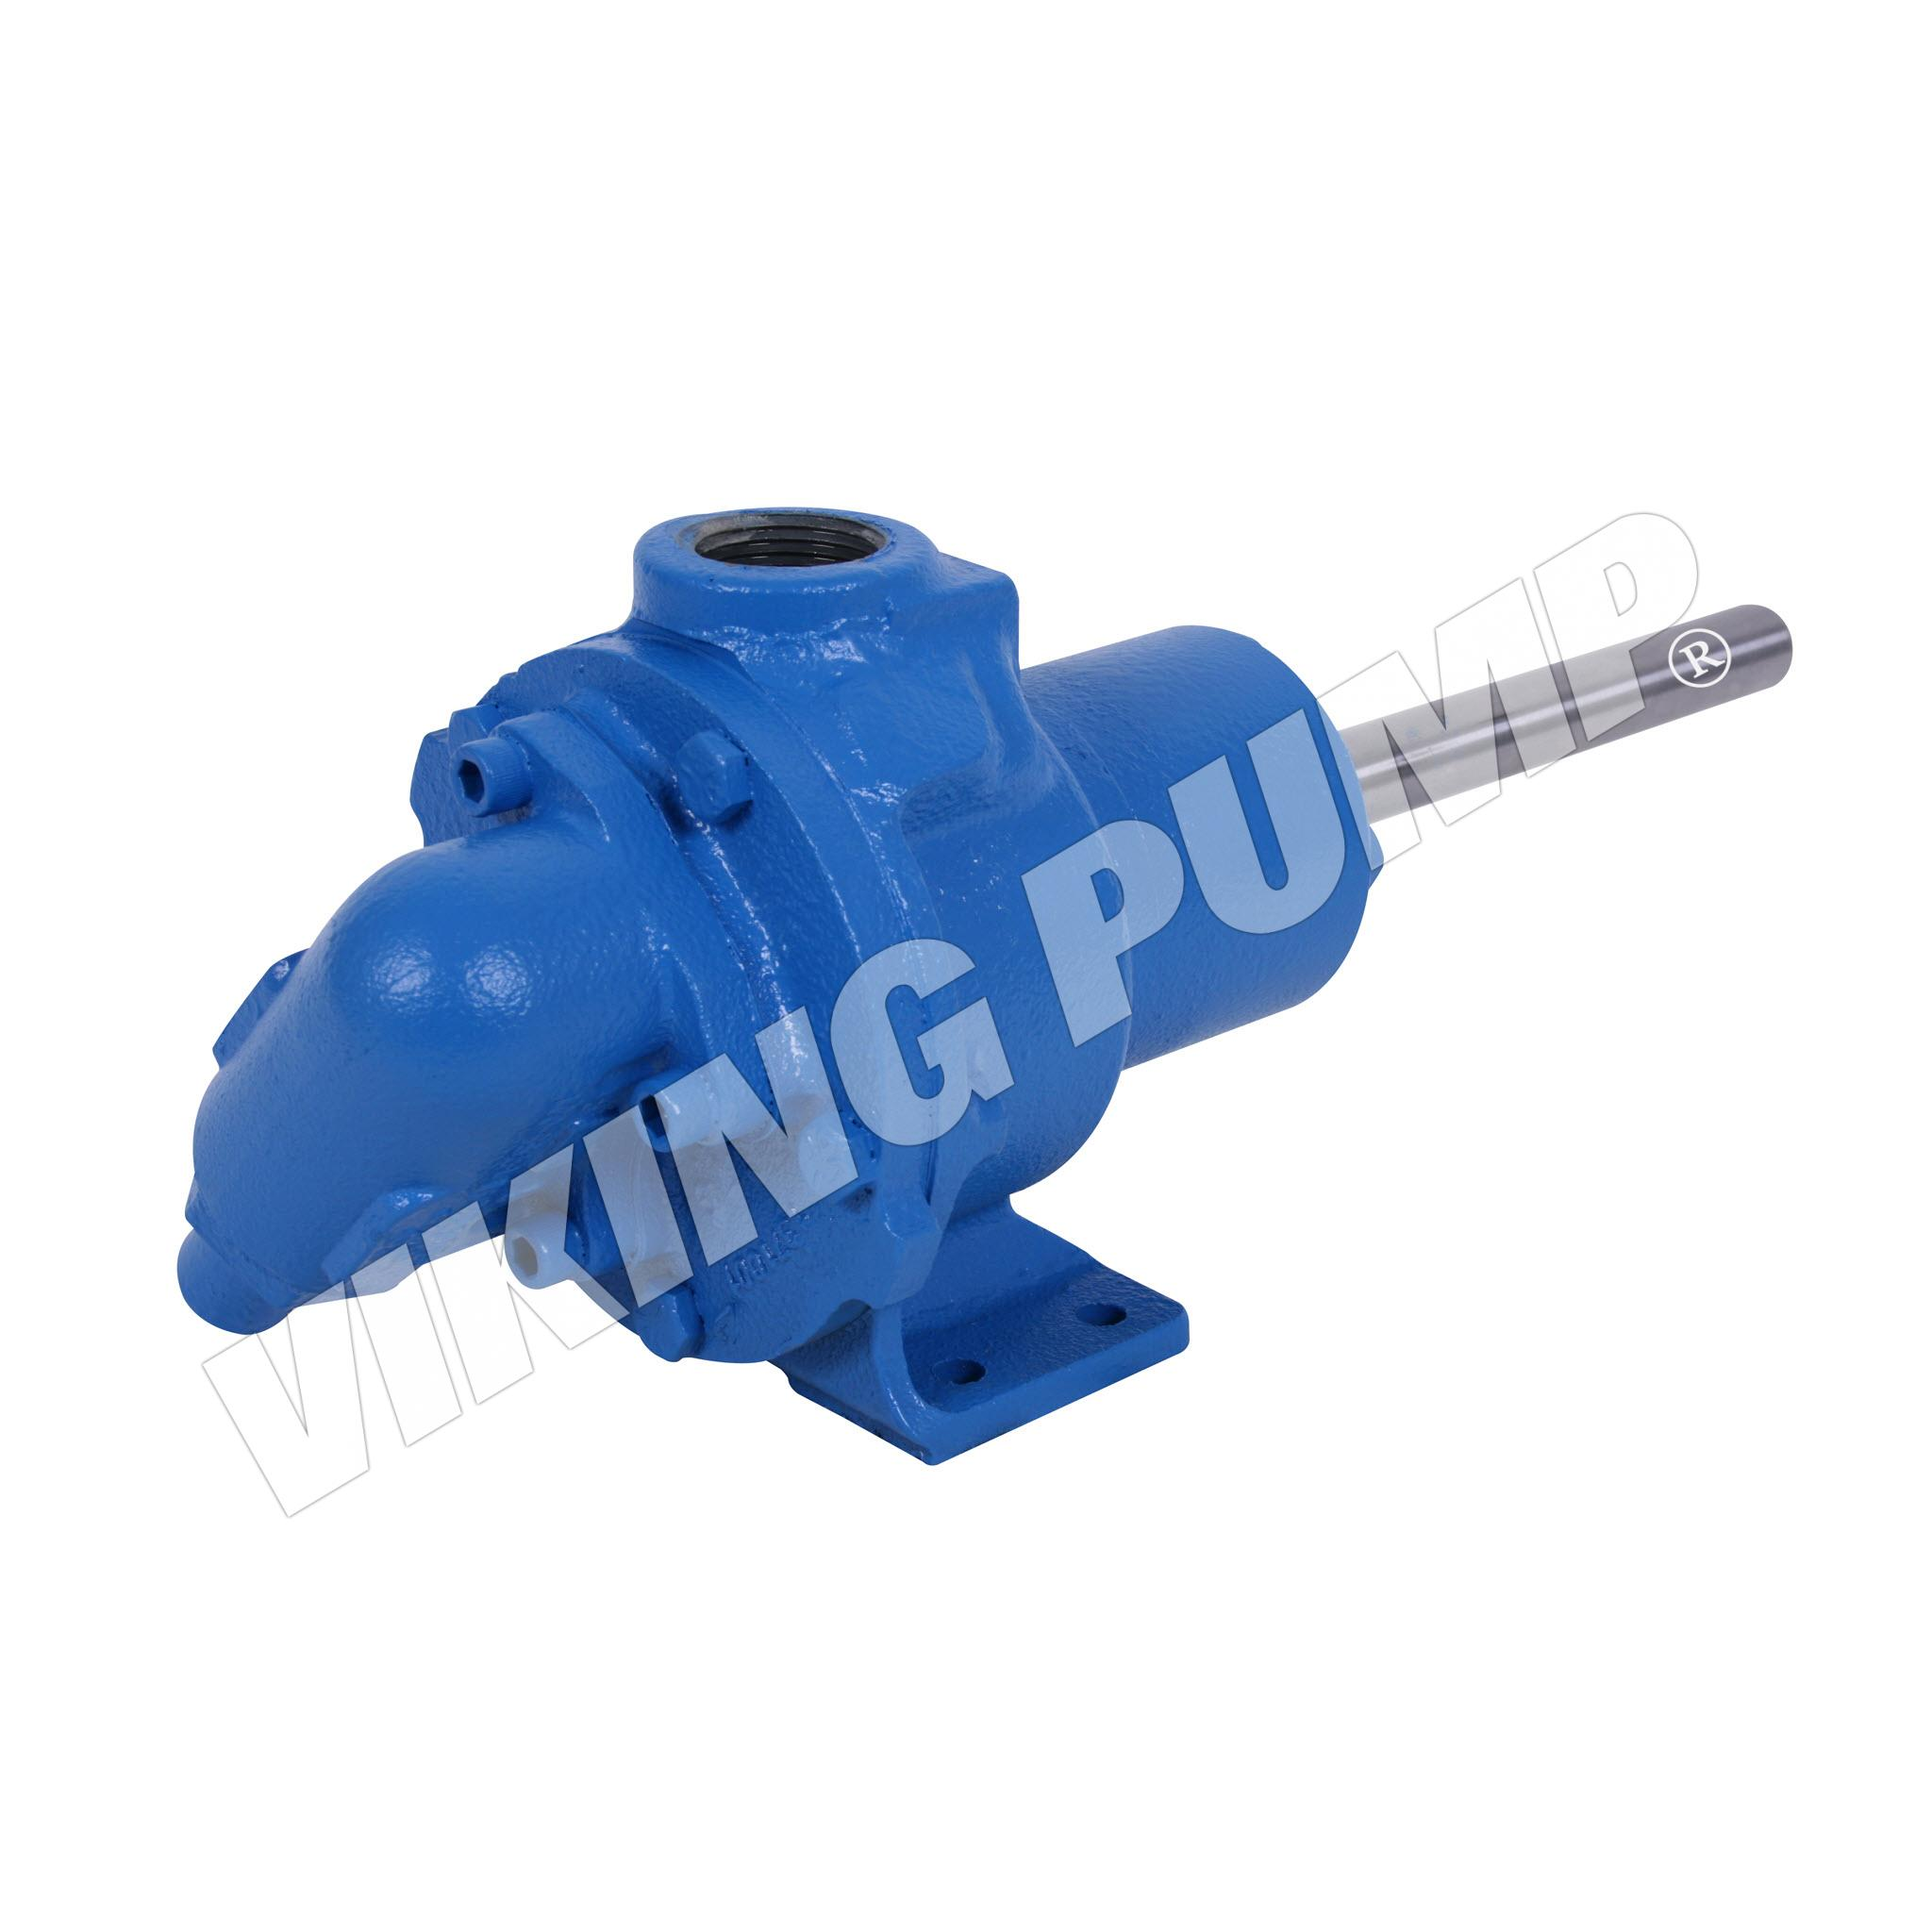 Model H432-X, Foot Mounted, Mechanical Seal, Relief Valve Pump